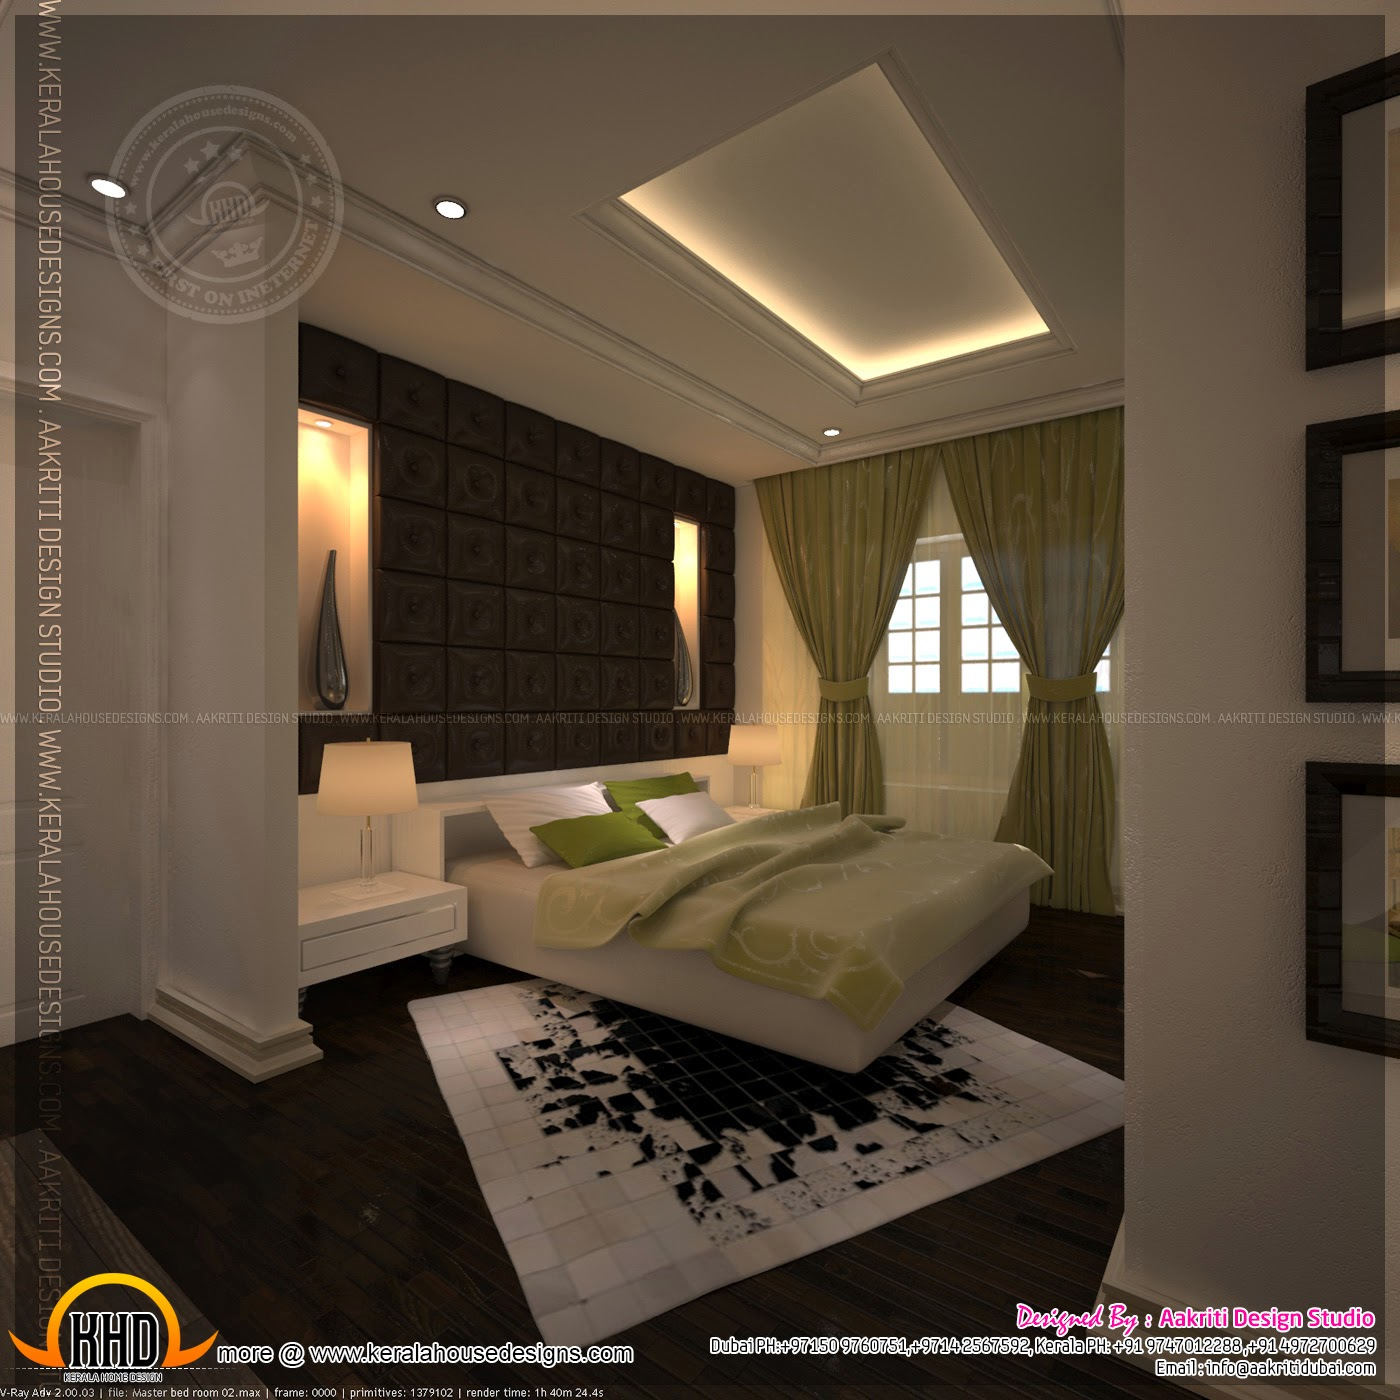 Master Bedroom And Bathroom Interior Design Kerala Home Design And Floor Plans: simple bathroom design indian